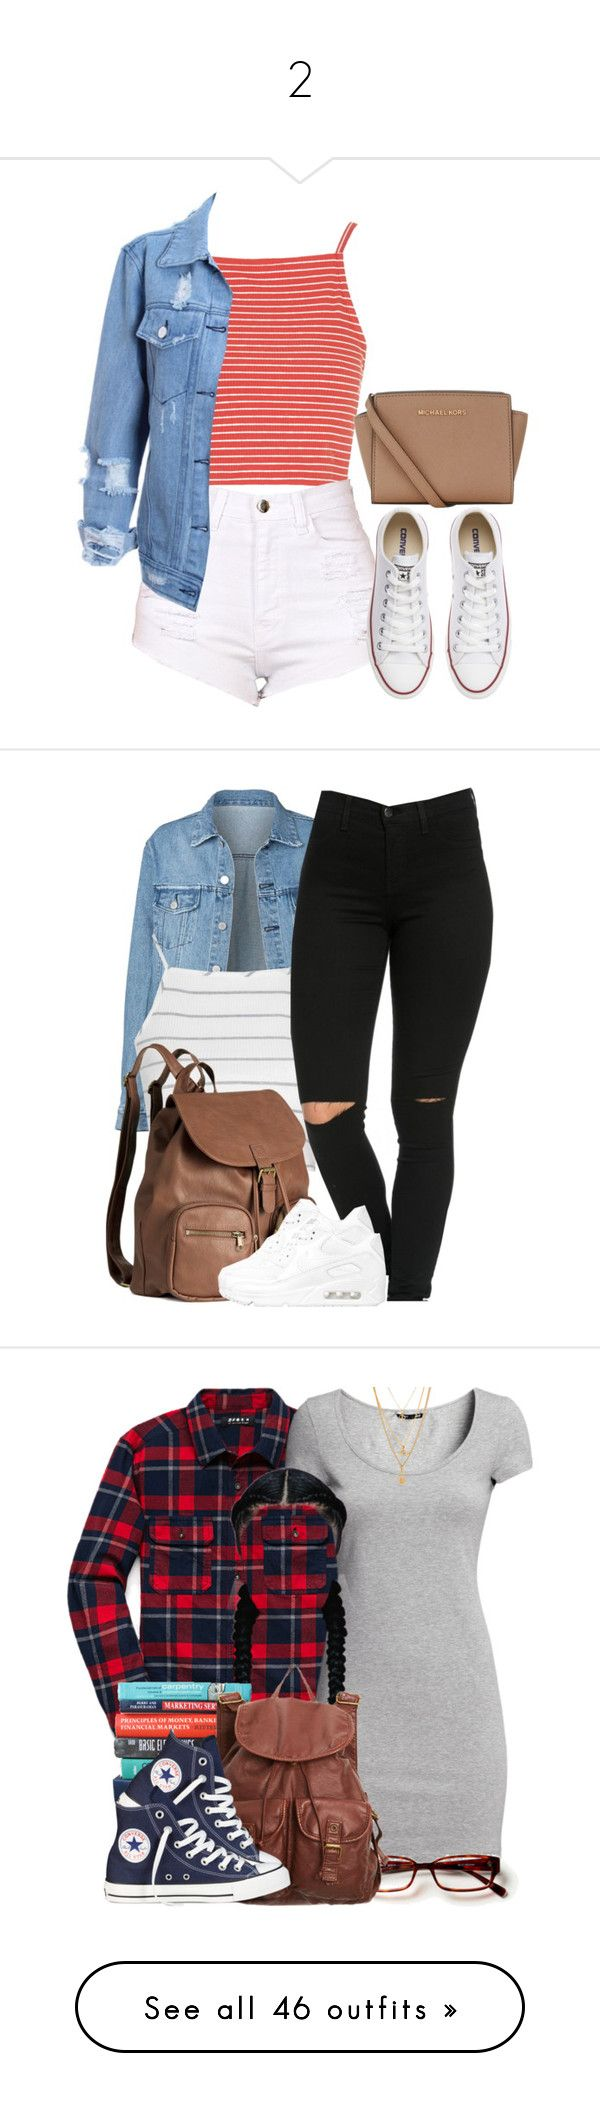 """2"" by cassycortez2002 ❤ liked on Polyvore featuring Topshop, Converse, MICHAEL Michael Kors, Glamorous, H&M, NIKE, 21 Men, dELiA*s, The Row and Givenchy"